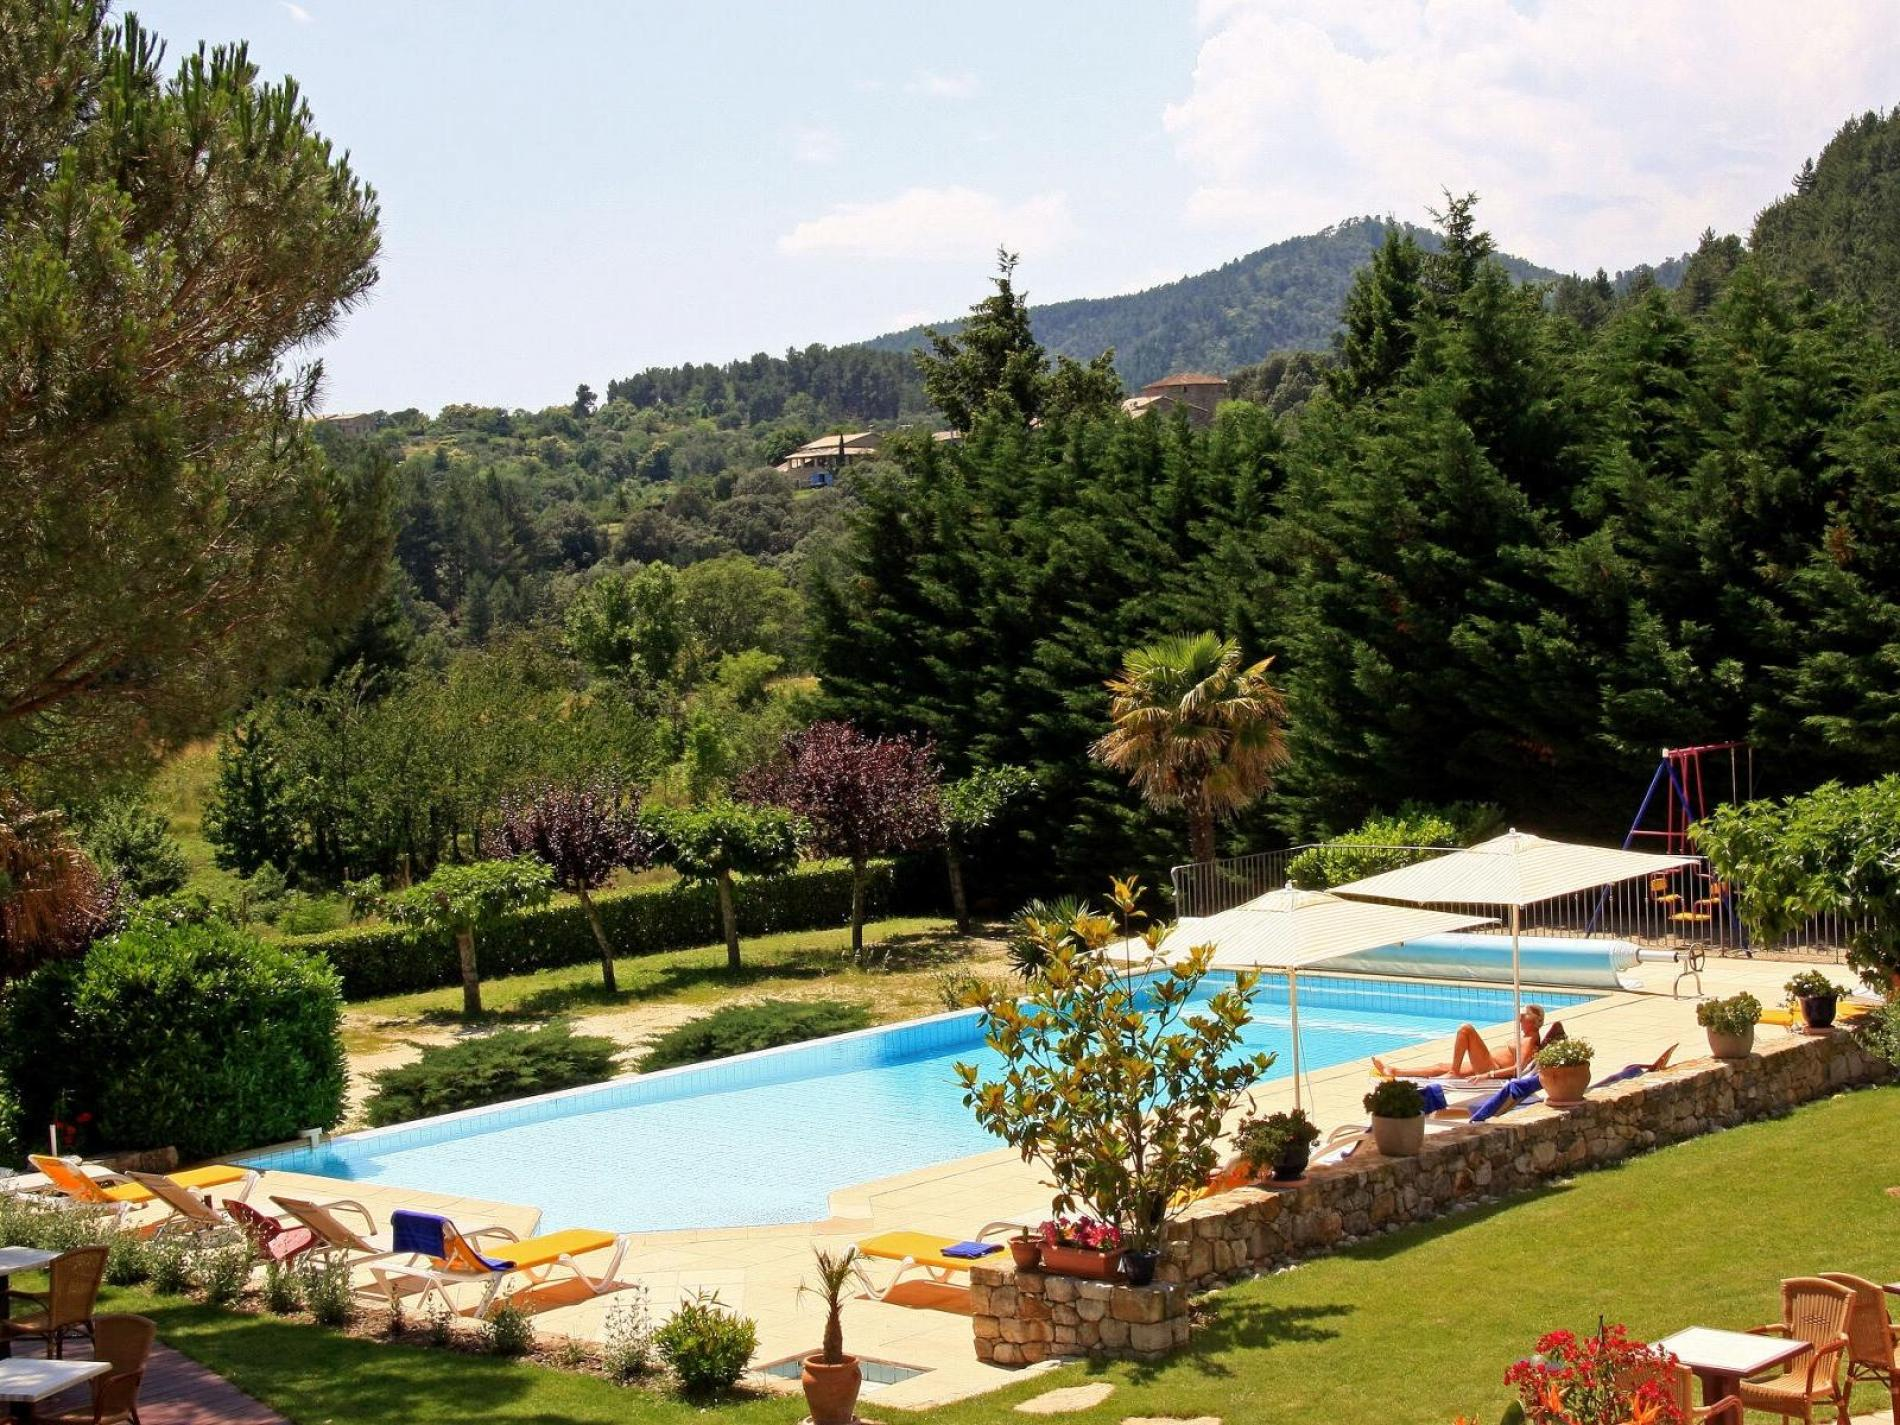 Relaxation & Wellbeing at the hotel's spa Le Chêne Vert *** in Rocher en Ardèche